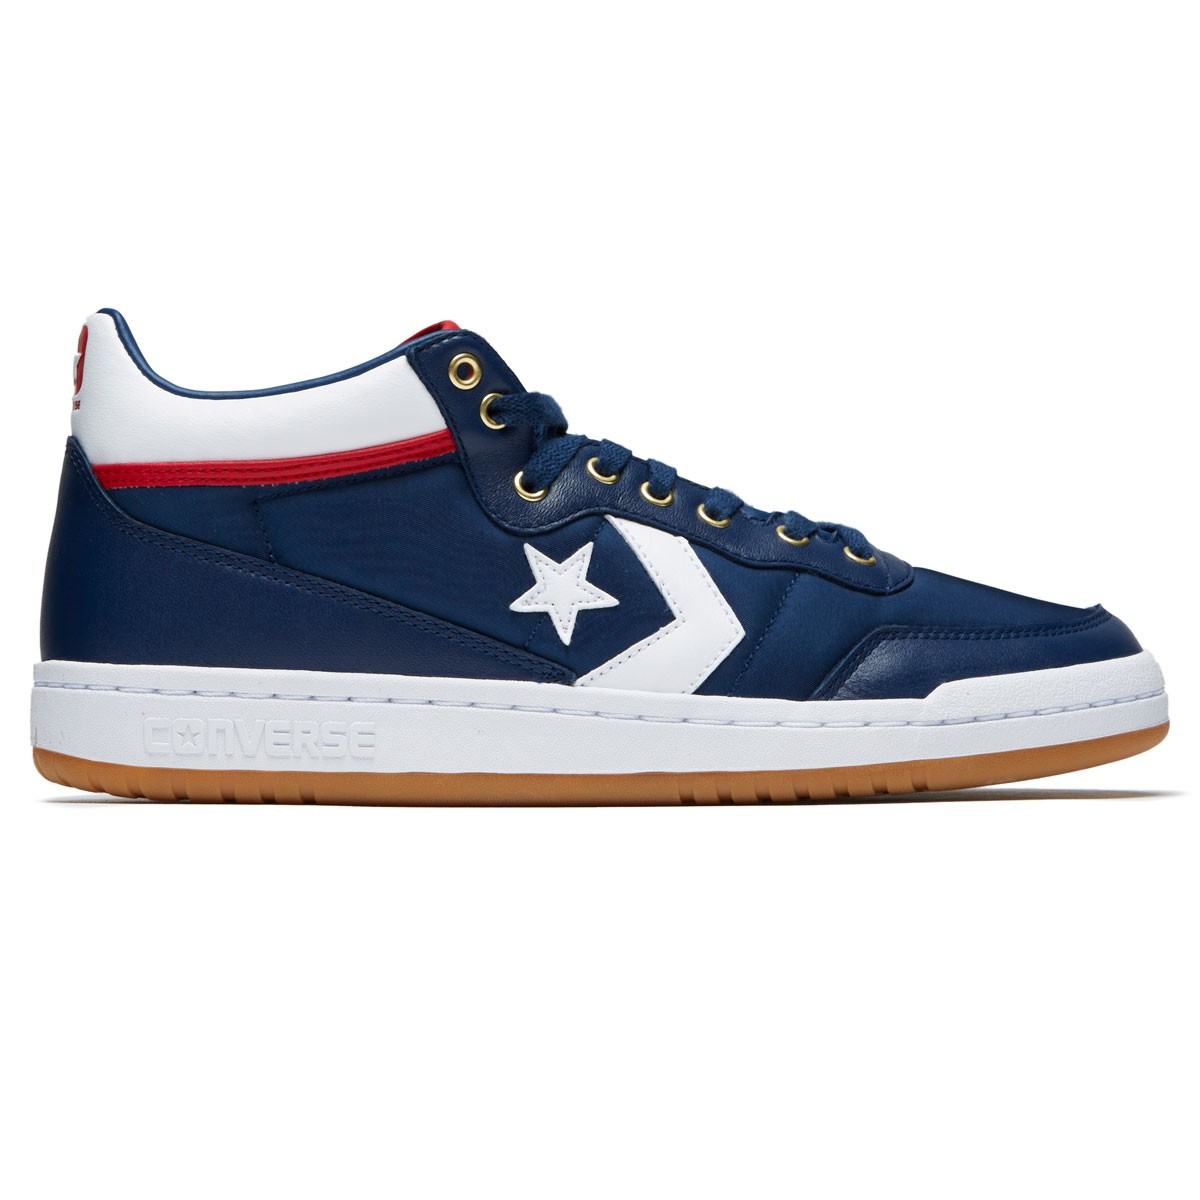 c527803fdde9 Converse Fastbreak Pro Mid Shoes - Navy White Enamel Red - 10.0